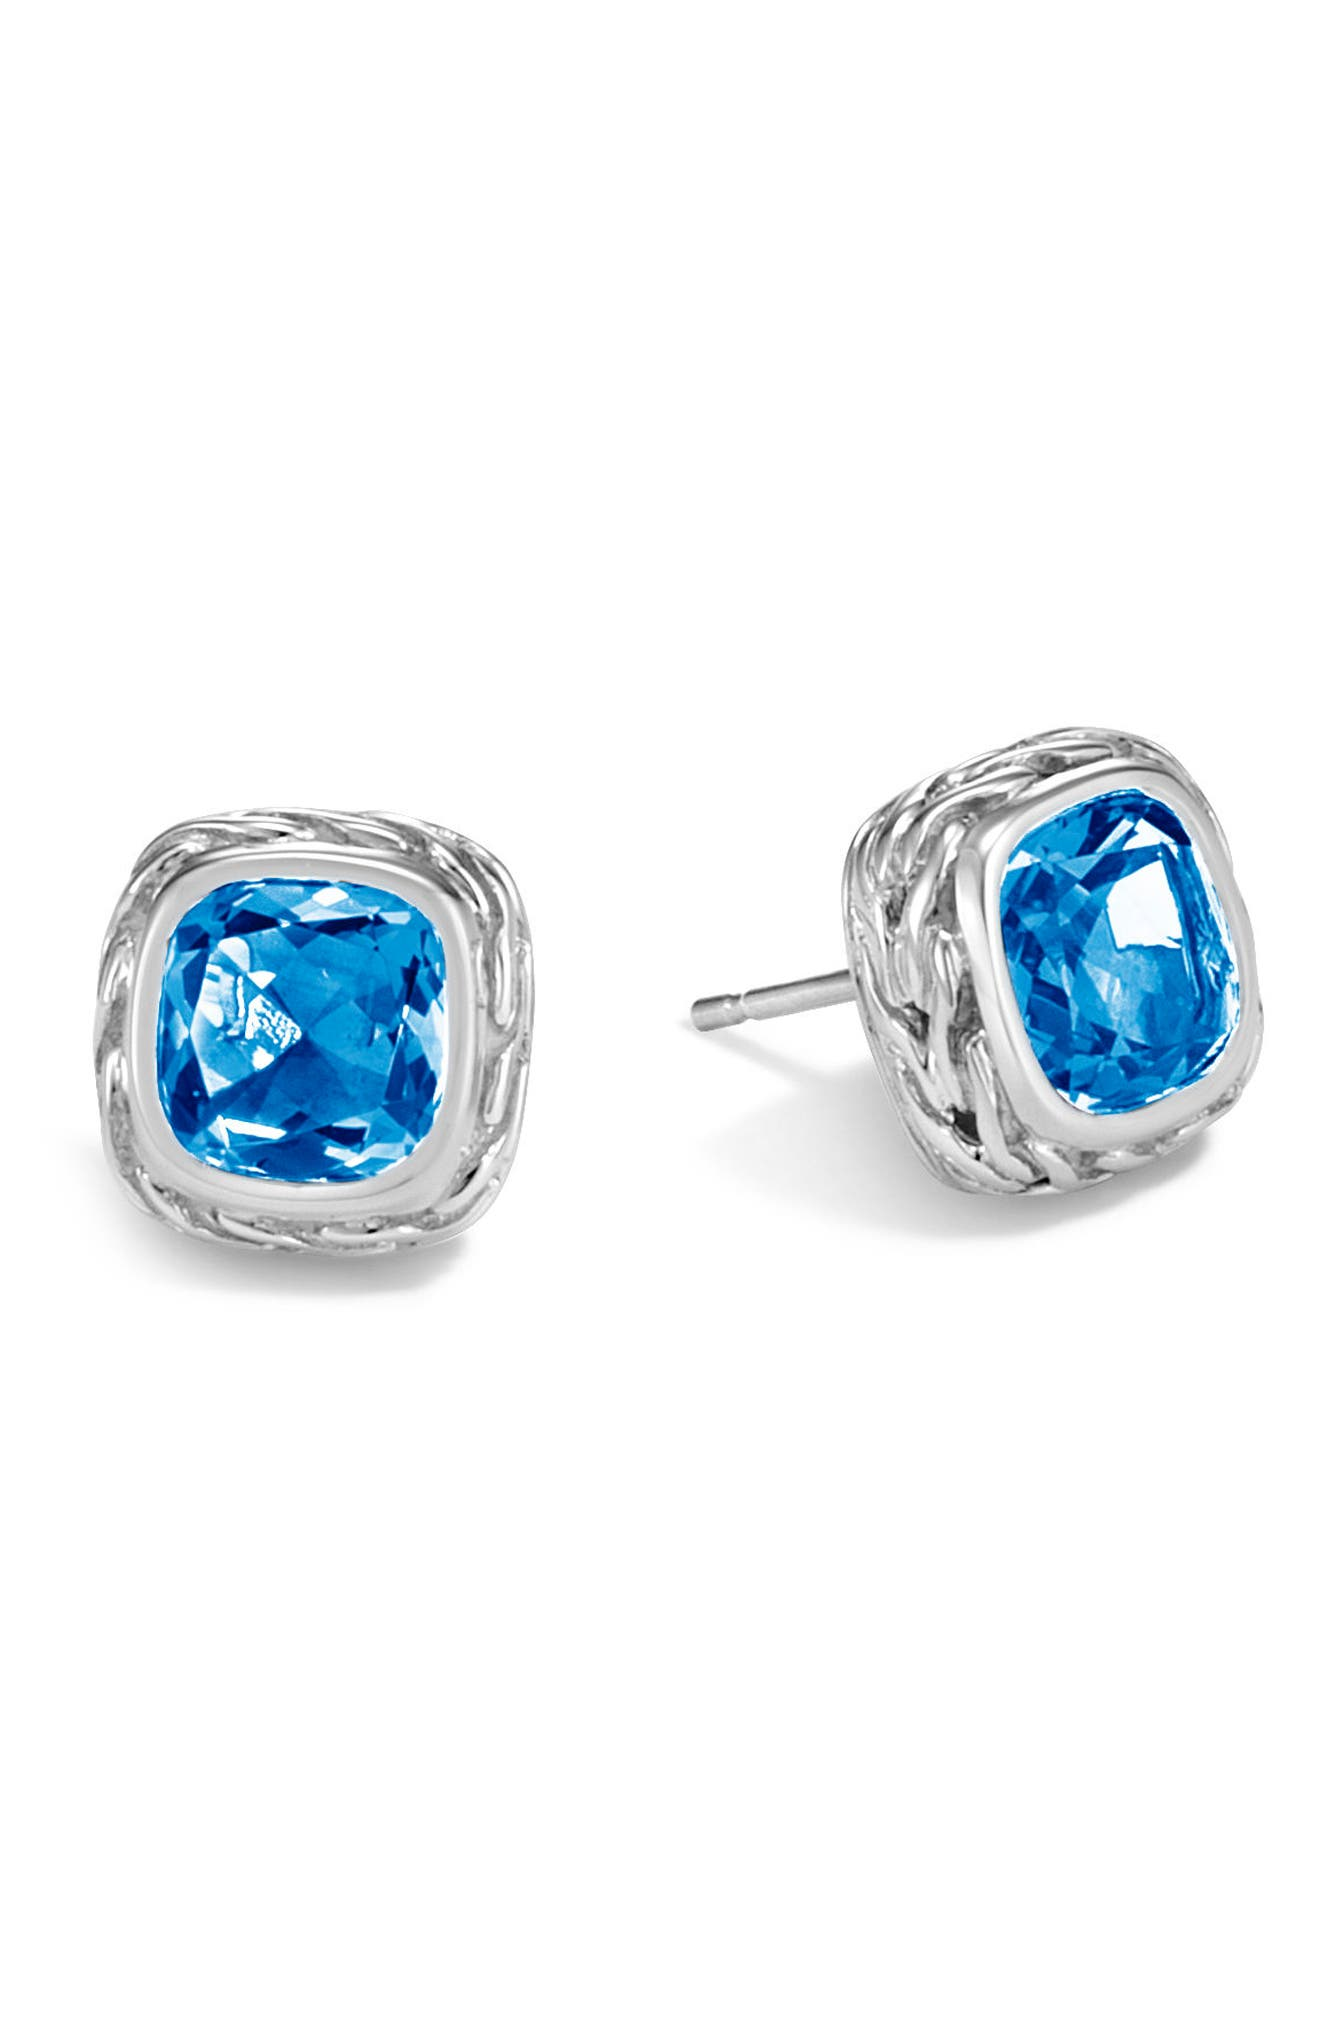 Magic Cut Blue Topaz Stud Earrings,                         Main,                         color, Silver/ London Blue Topaz